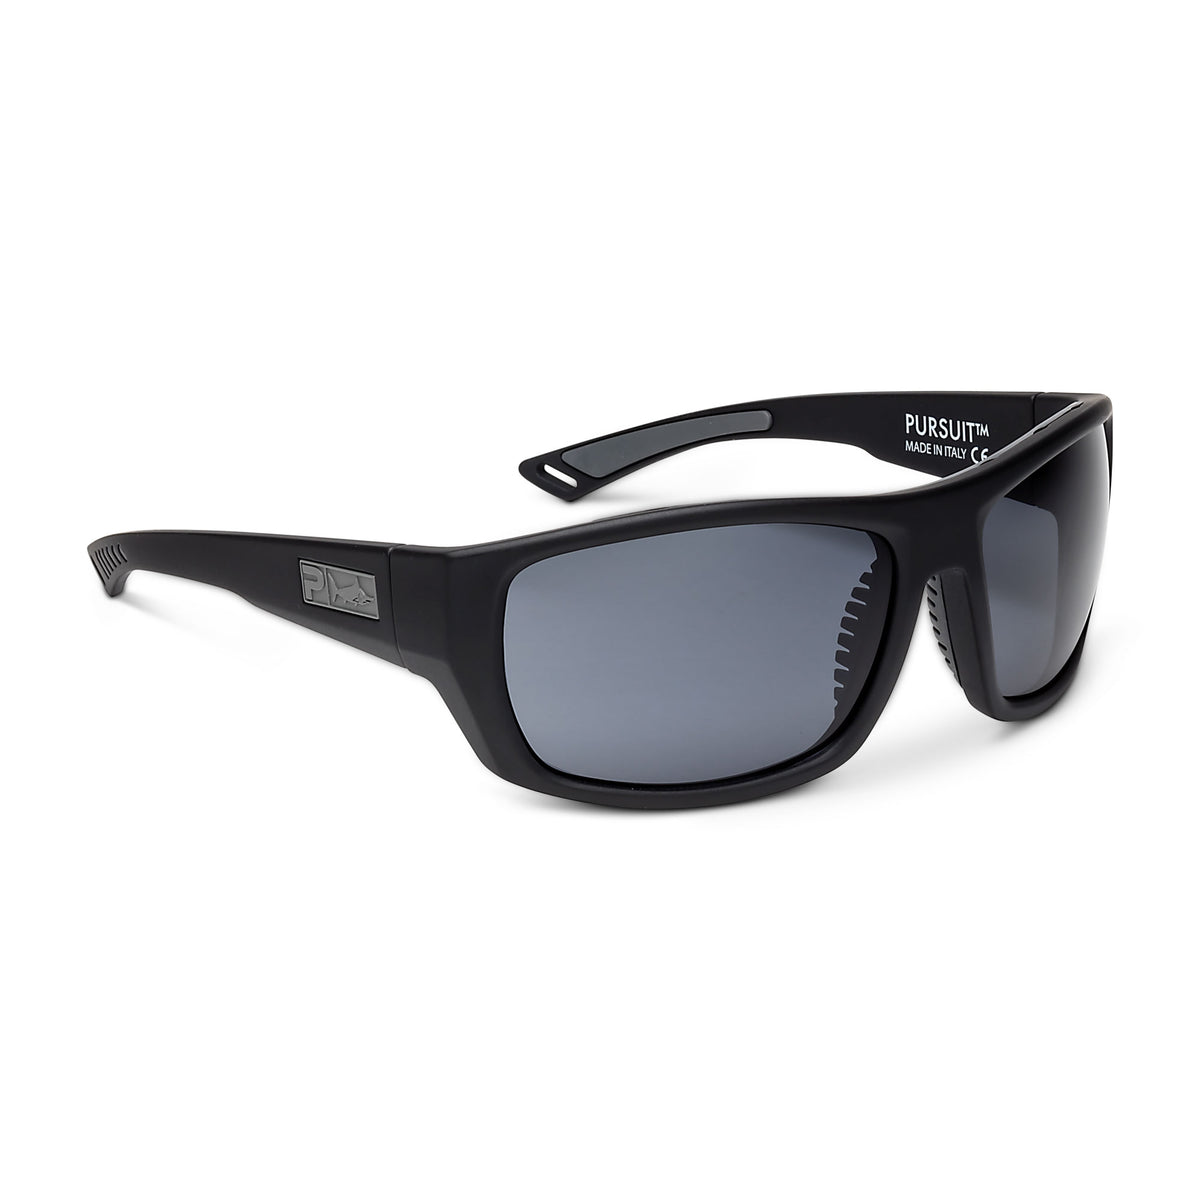 Pursuit - Polarized XP-700™ Polycarbonate Lens Big Image - 1